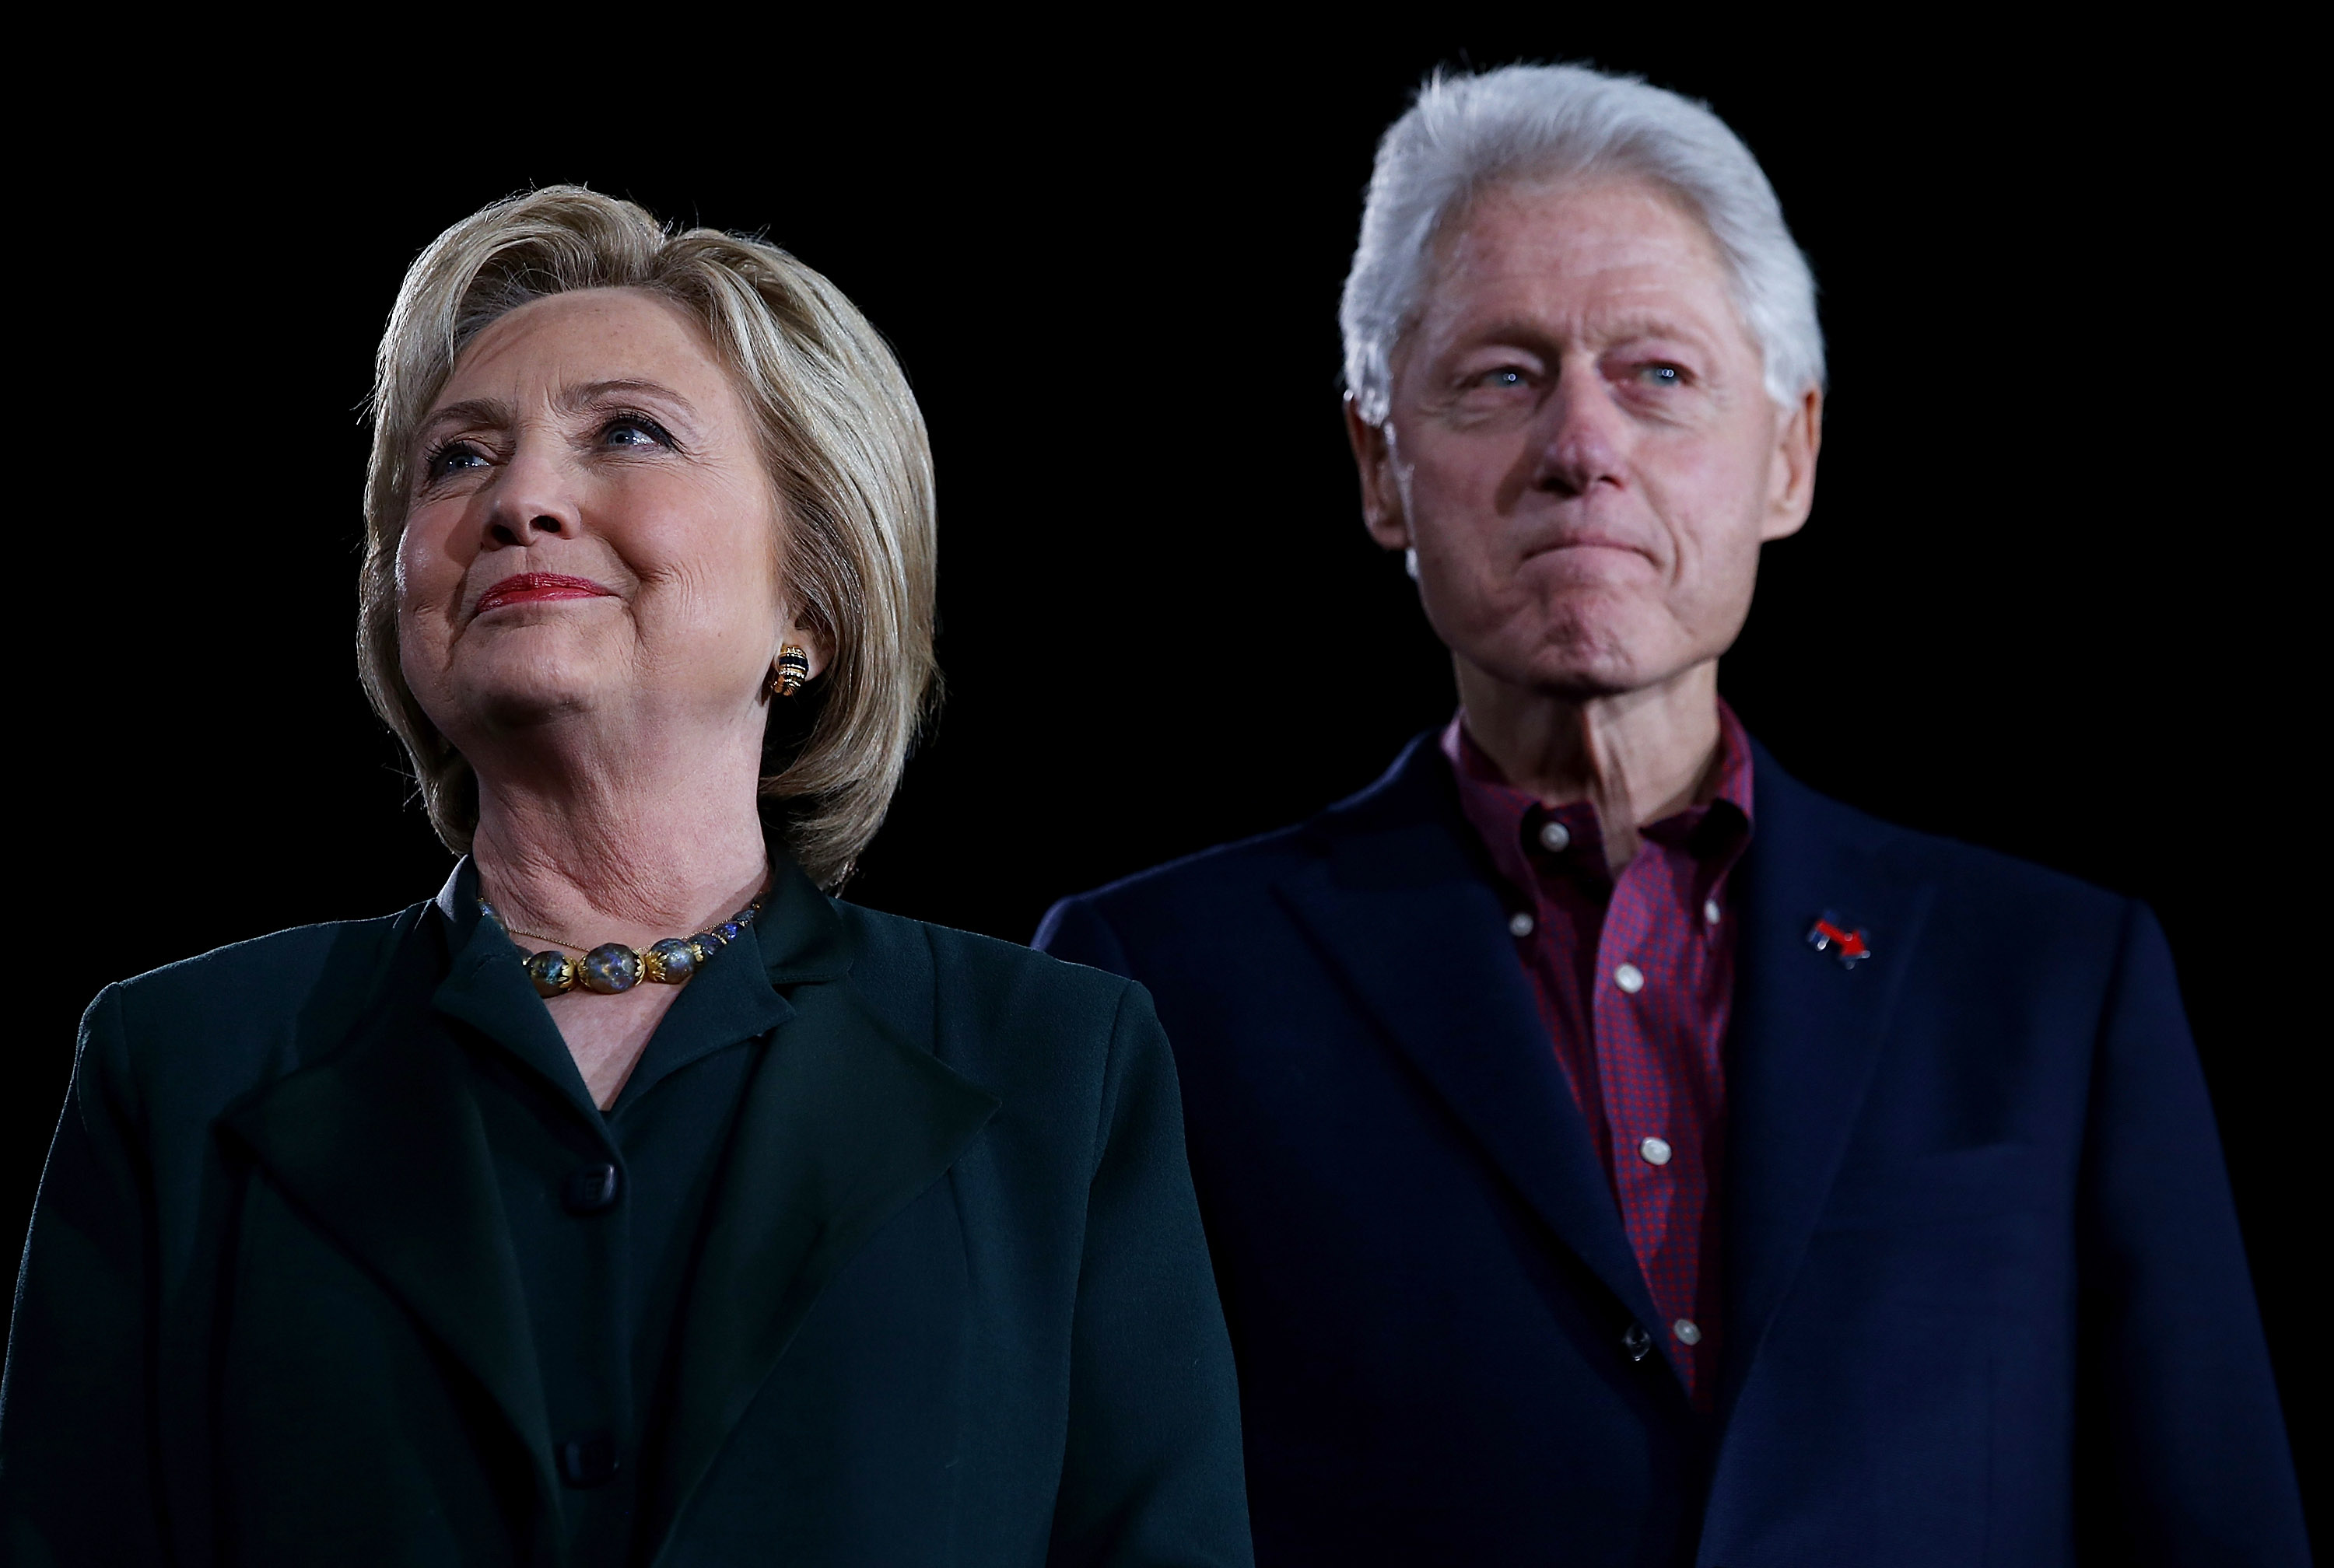 Former Secretary of State Hillary Clinton and her husband, former U.S. president Bill Clinton. (Justin Sullivan/Getty Images)